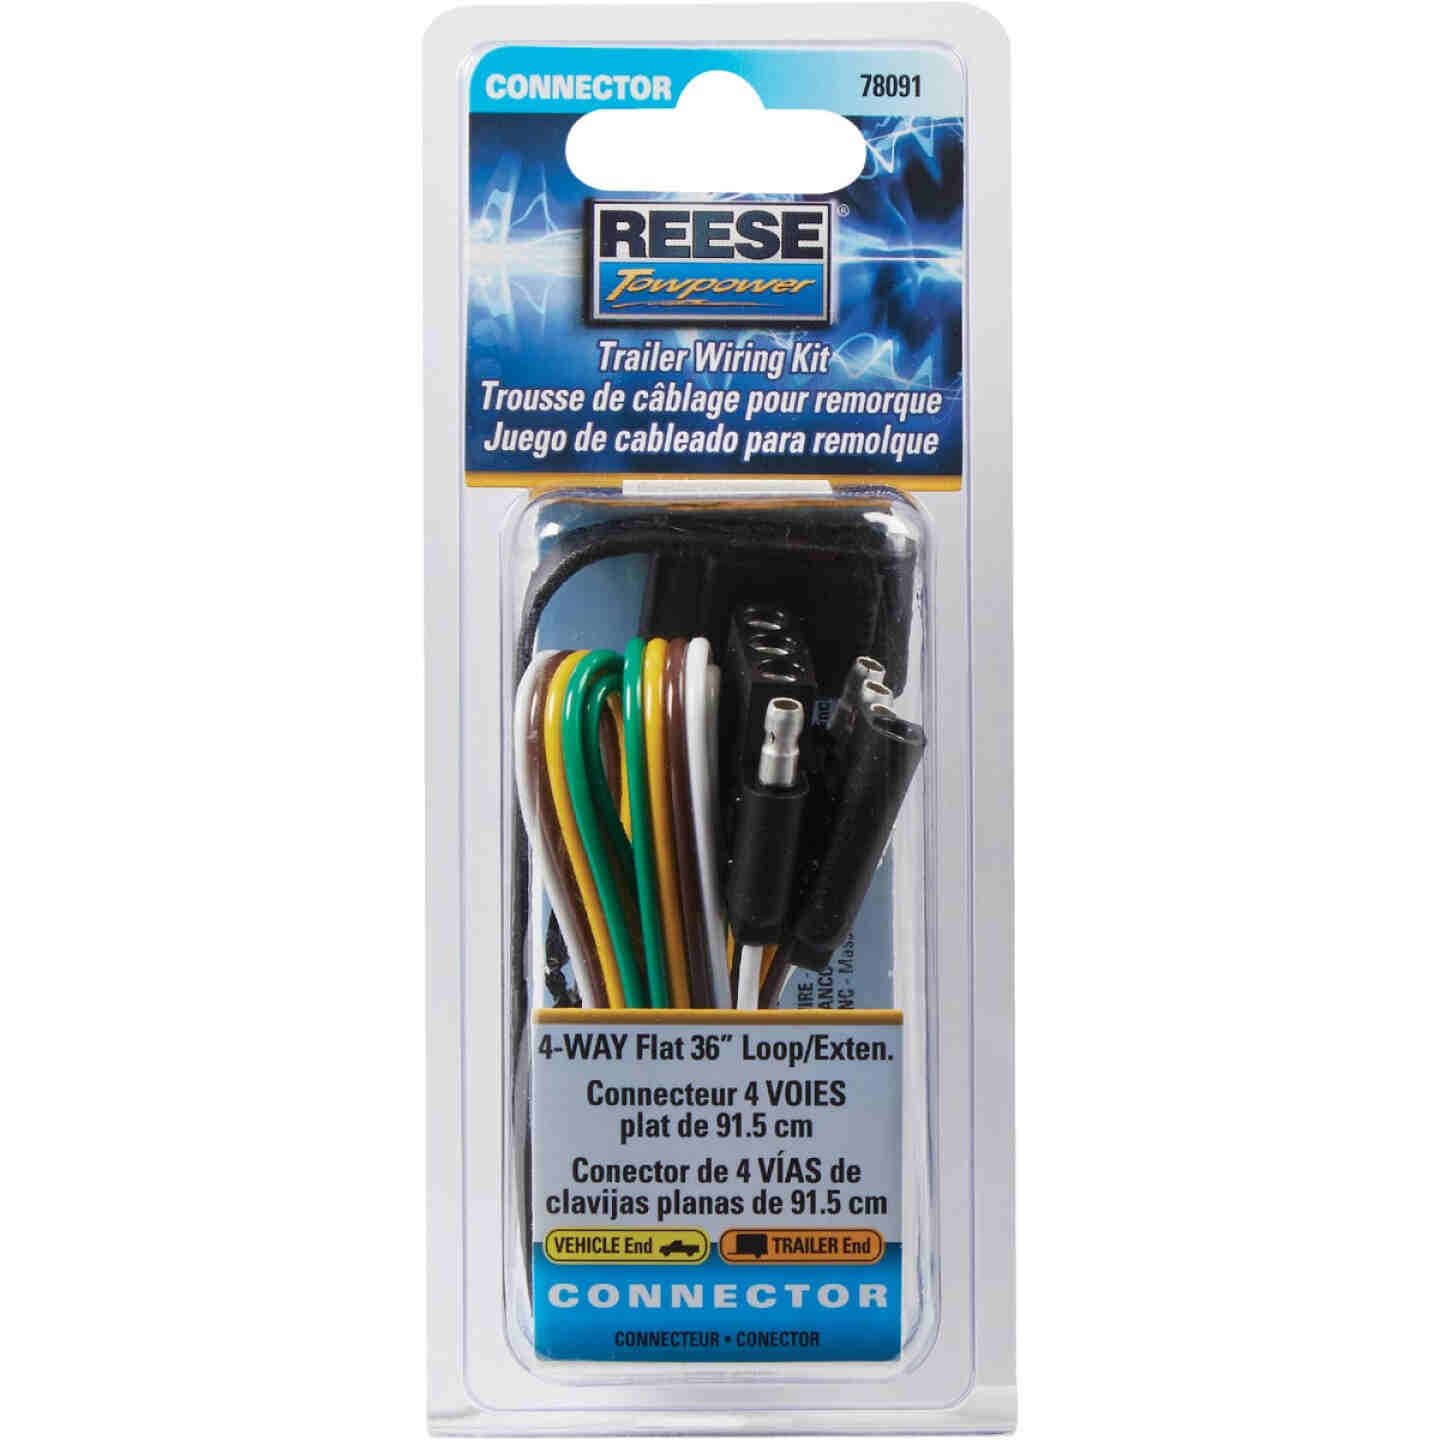 Reese Towpower 4-Flat 36 In. Loop with Ground Eyelet Vehicle/Trailer Connector Set Image 2